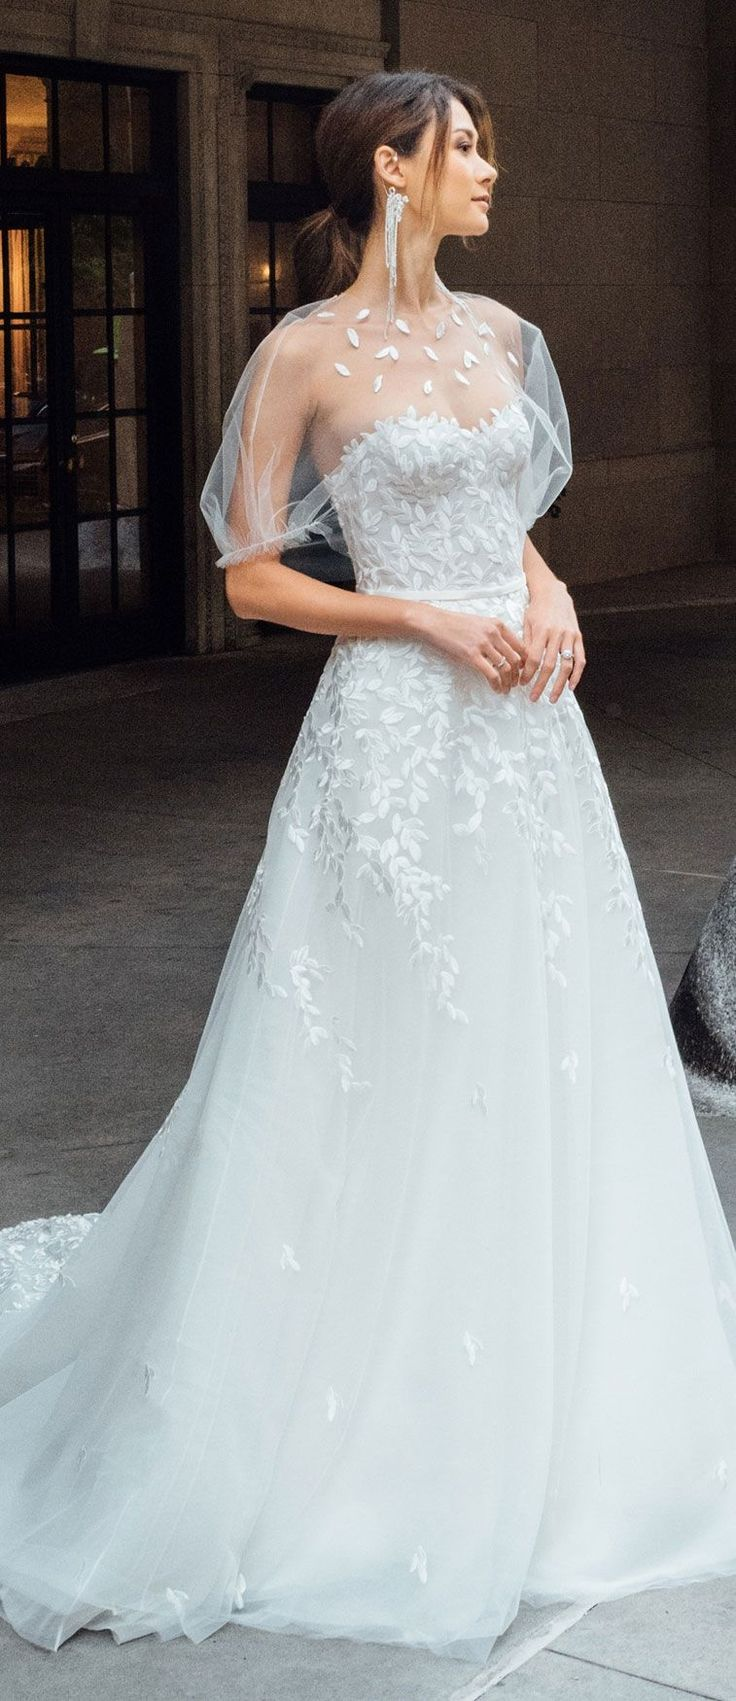 Wedding Dress inspiration, Stunning wedding gown perfect for glam wedding #weddi…